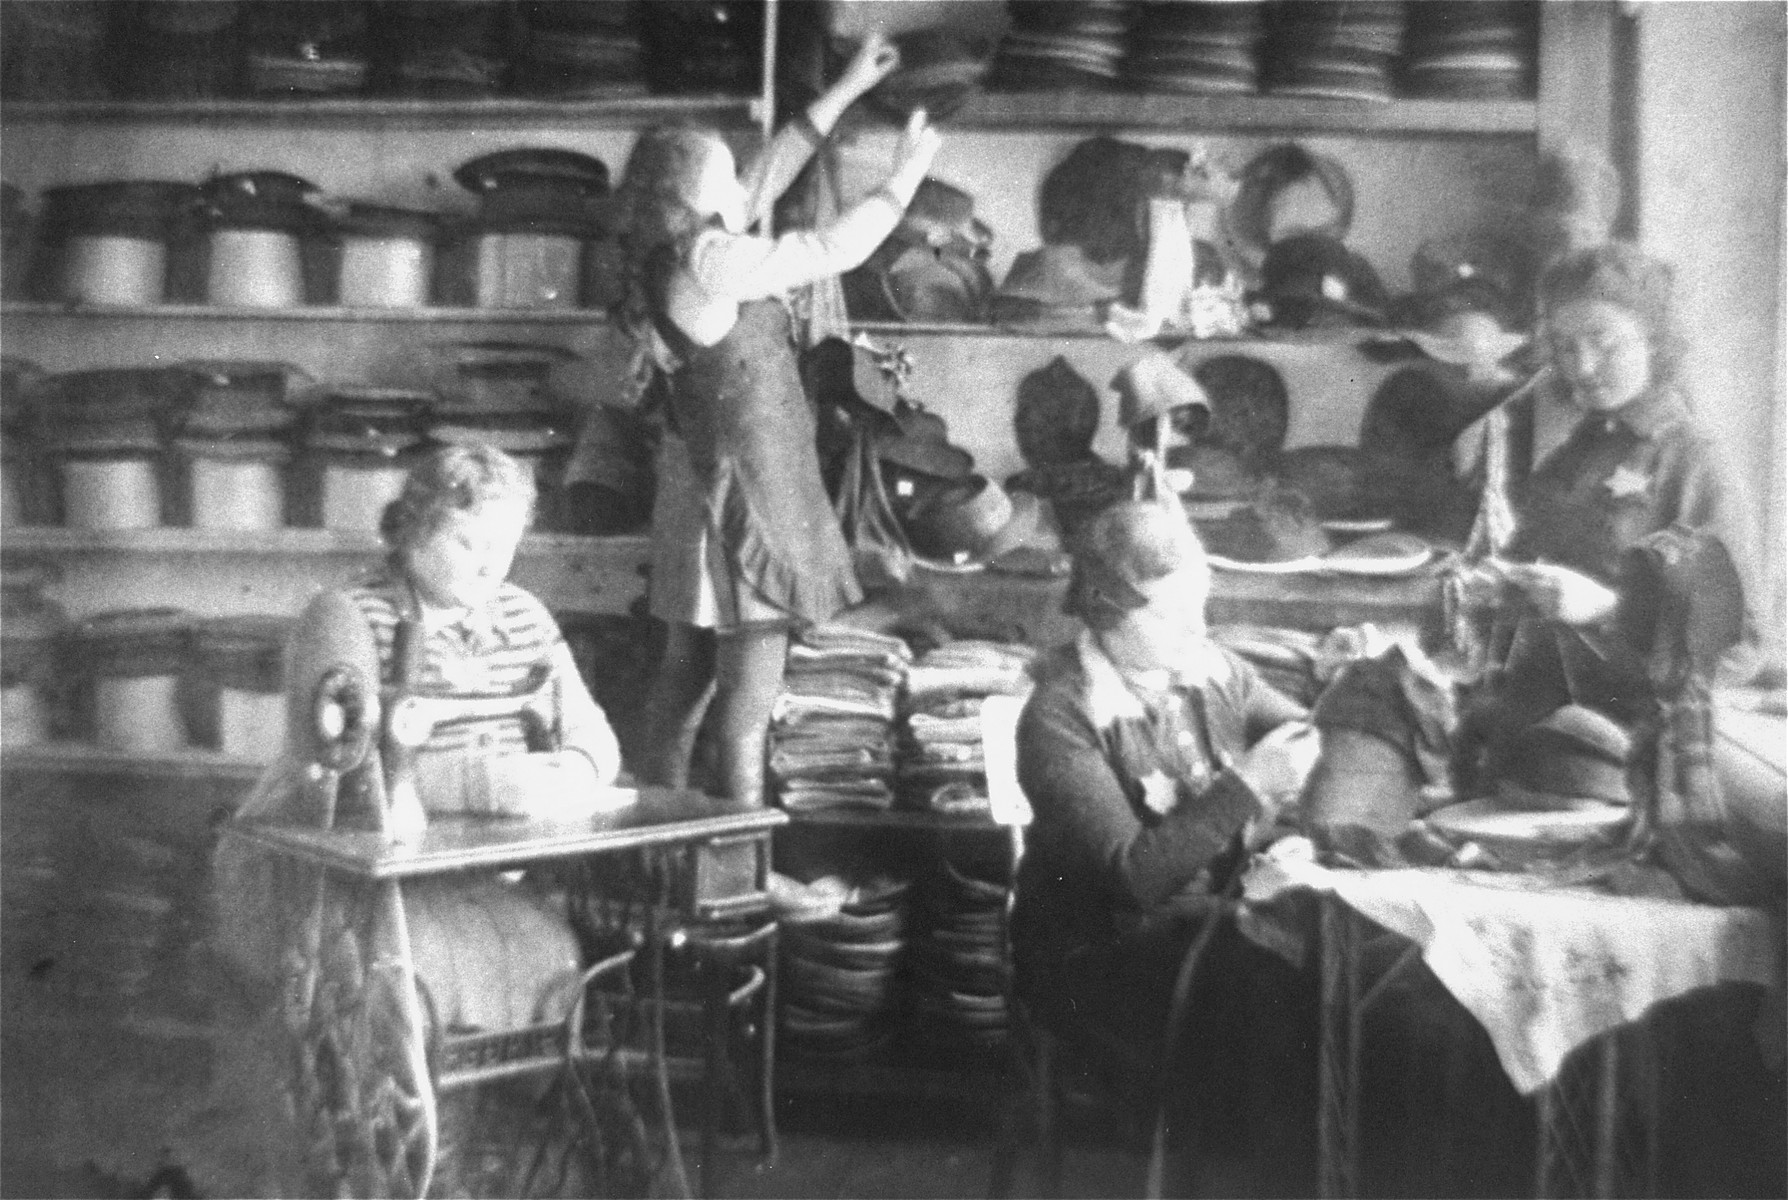 Jewish women working in a hatmaking workshop in the Glubokoye ghetto.    Among those pictured are Rivale and Rajze Lederman.